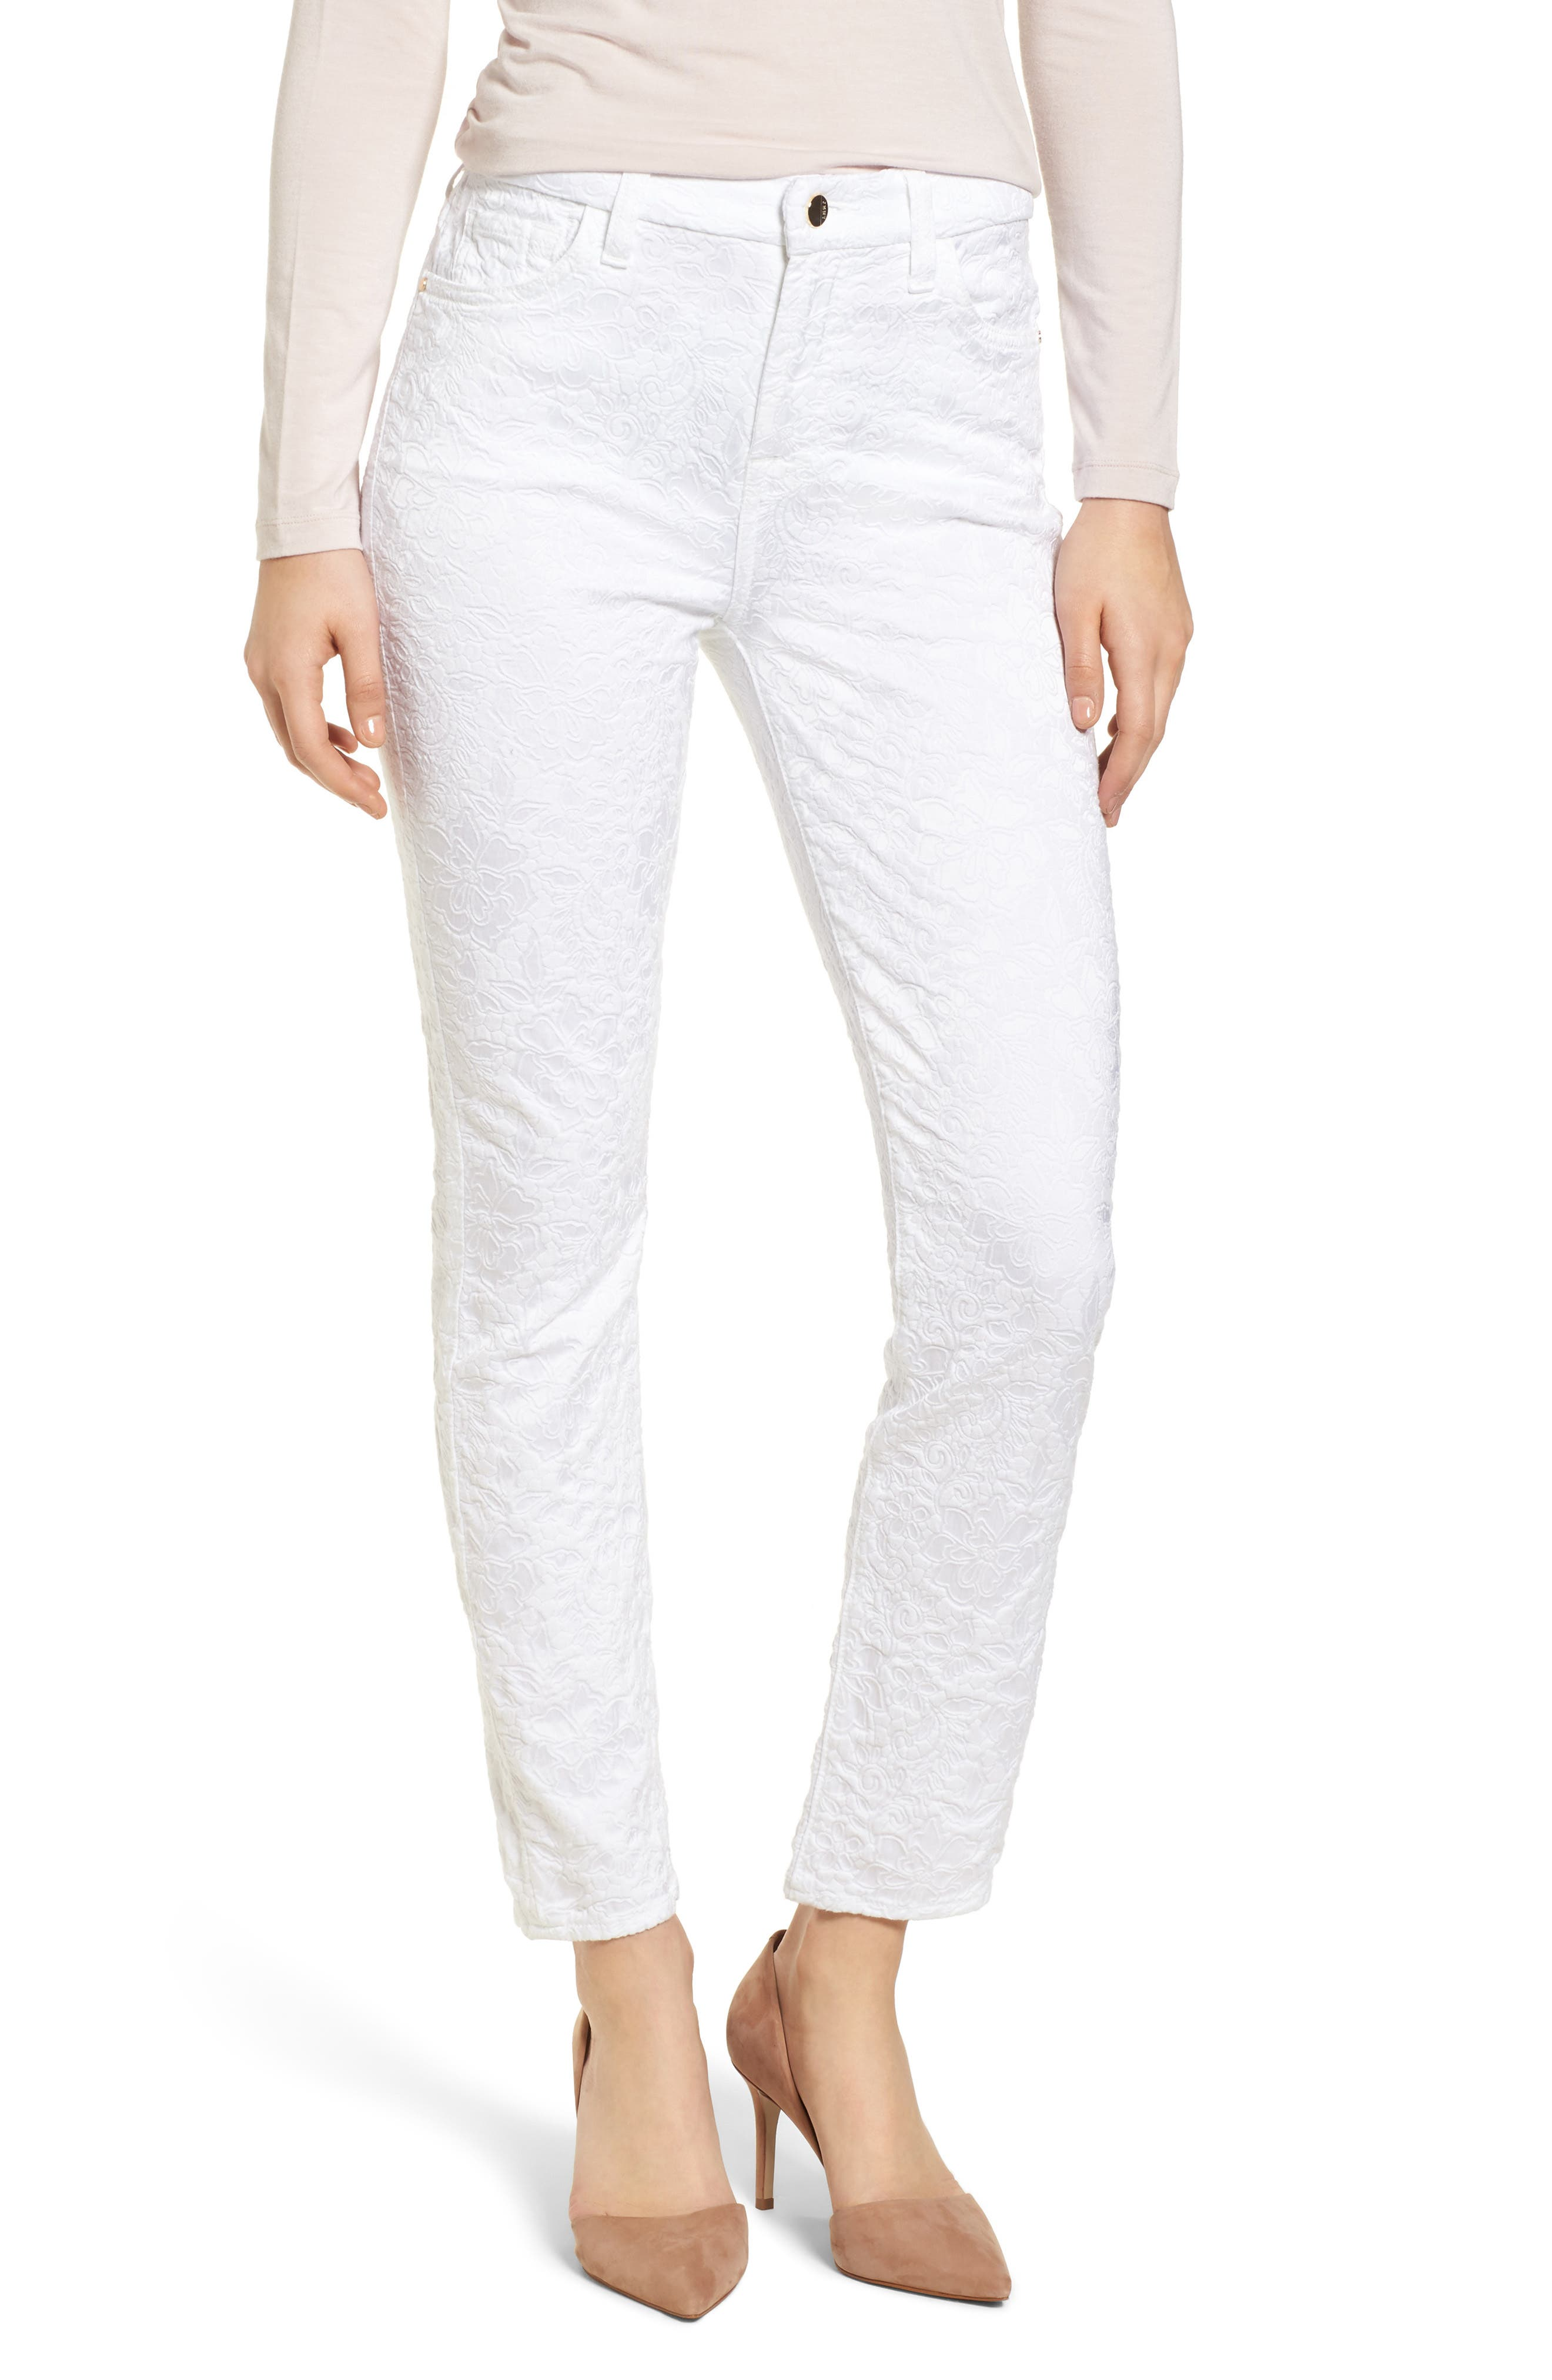 Jacquard Ankle Skinny Jeans,                         Main,                         color, White